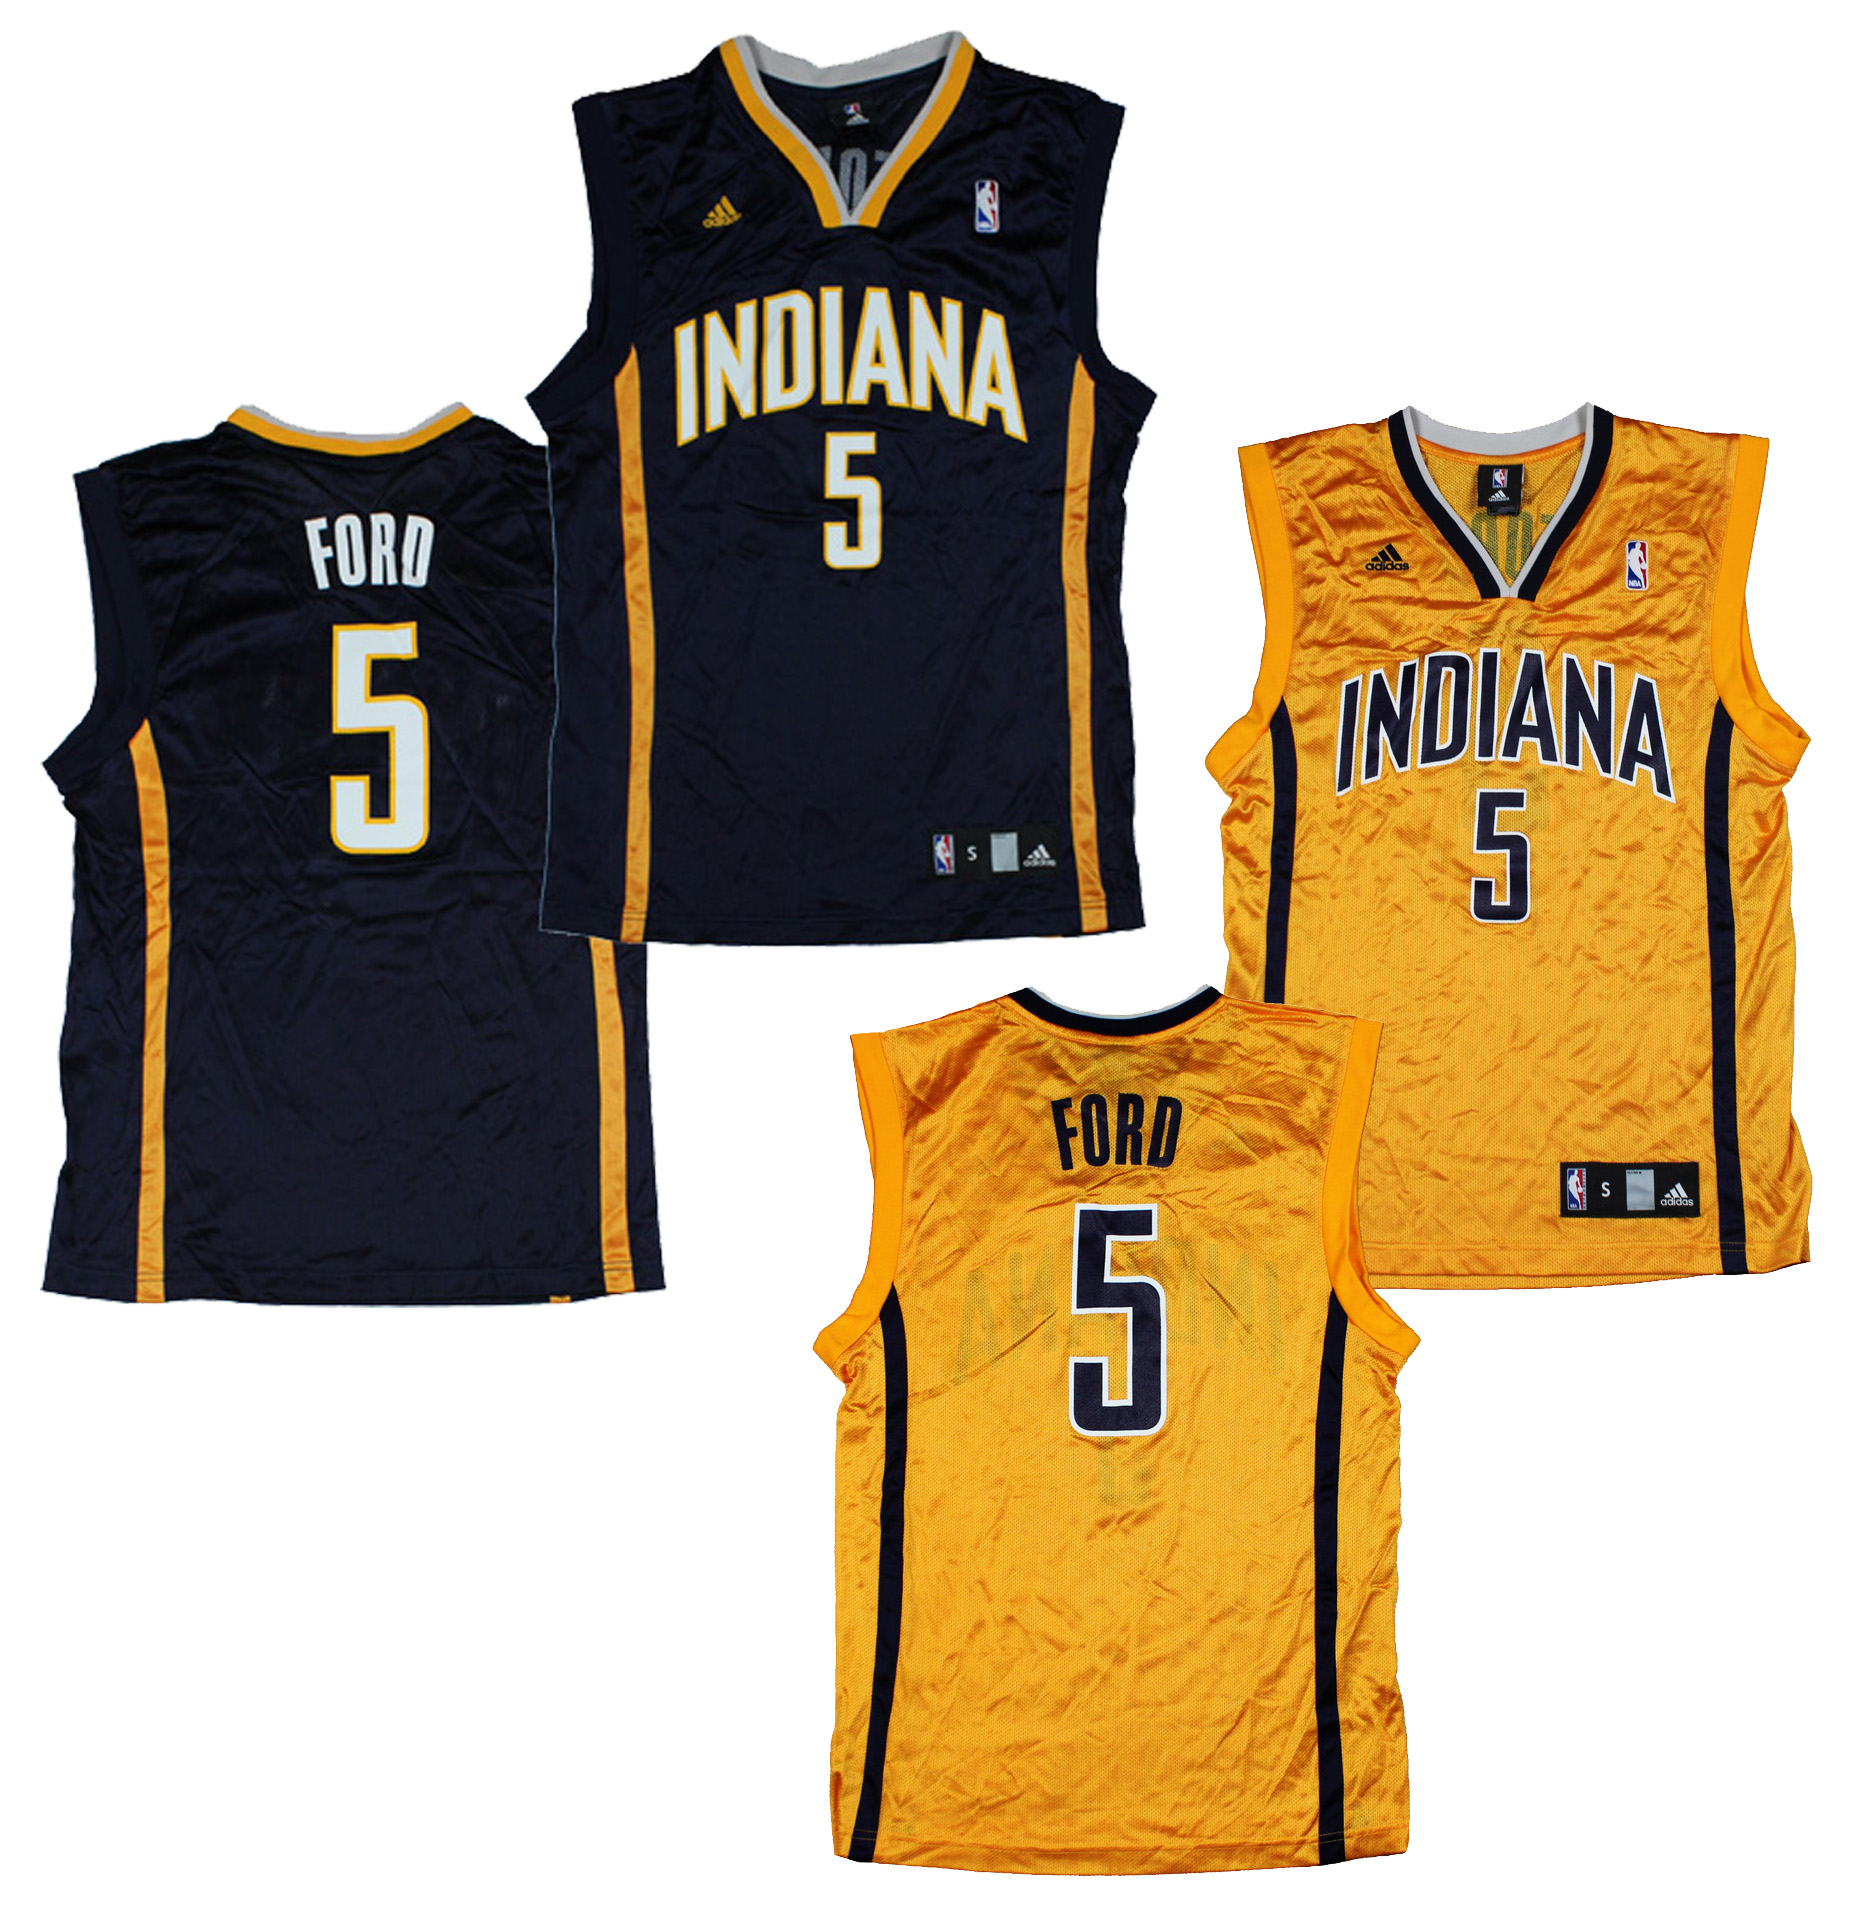 reputable site 26958 f5c42 Details about Adidas Indiana Pacers NBA Replica FORD # 5 Basketball Jerseys  I Yellow OR Navy